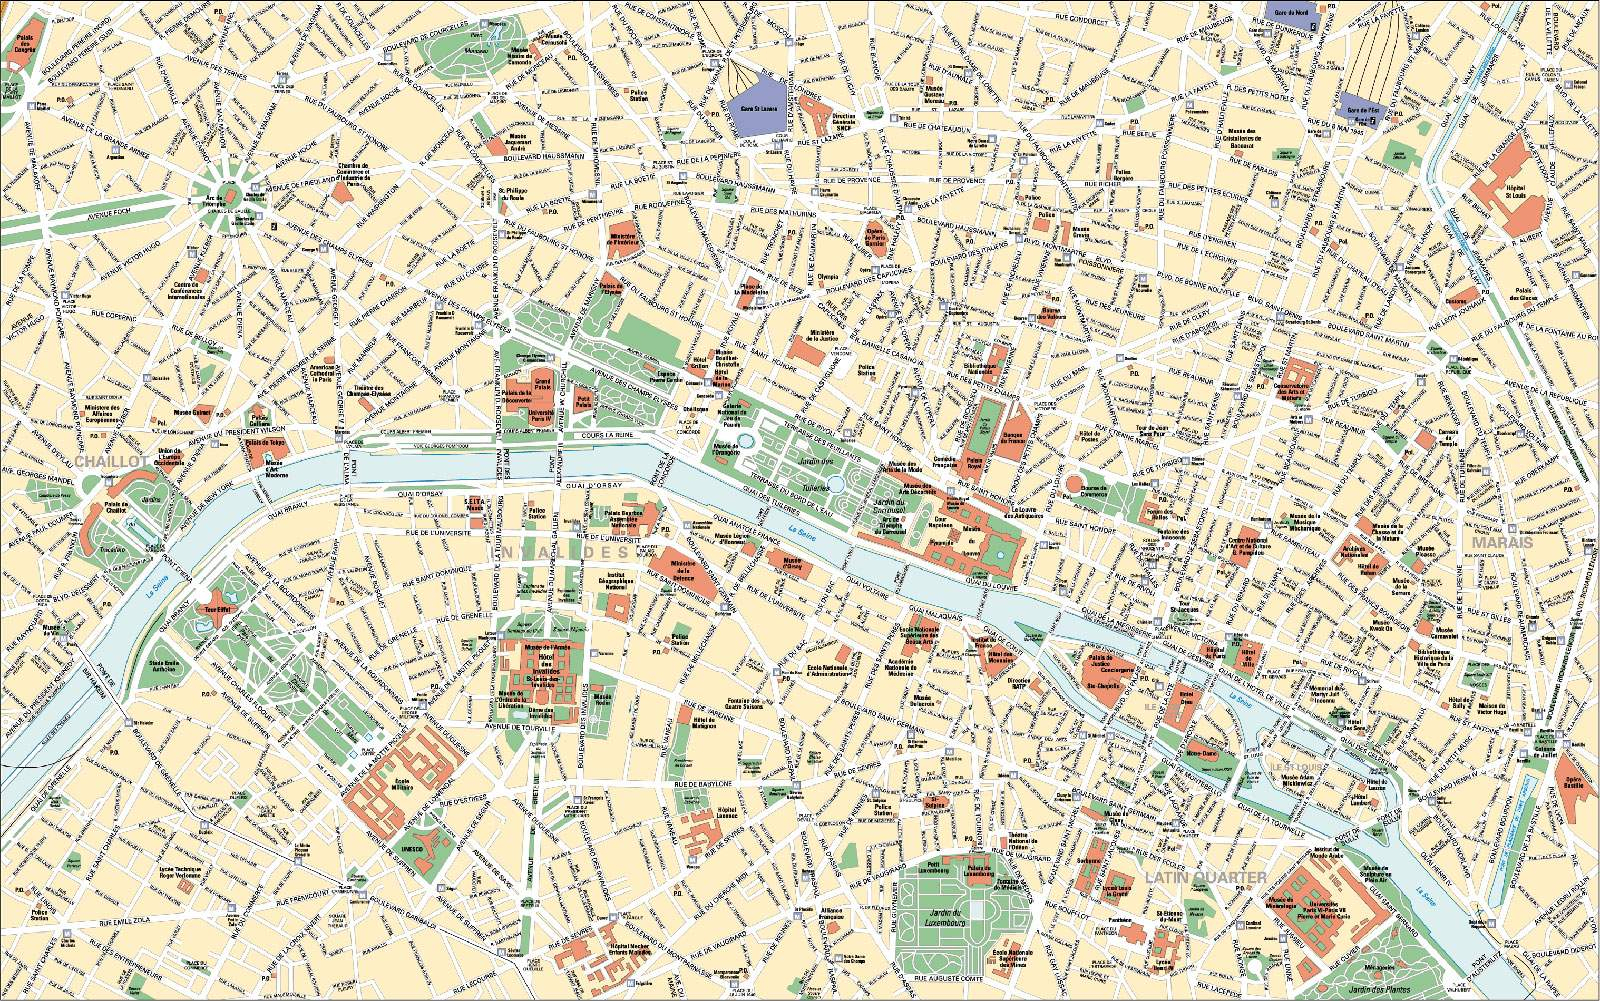 Large Paris Maps For Free Download And Print | High-Resolution And - Printable Tourist Map Of Paris France